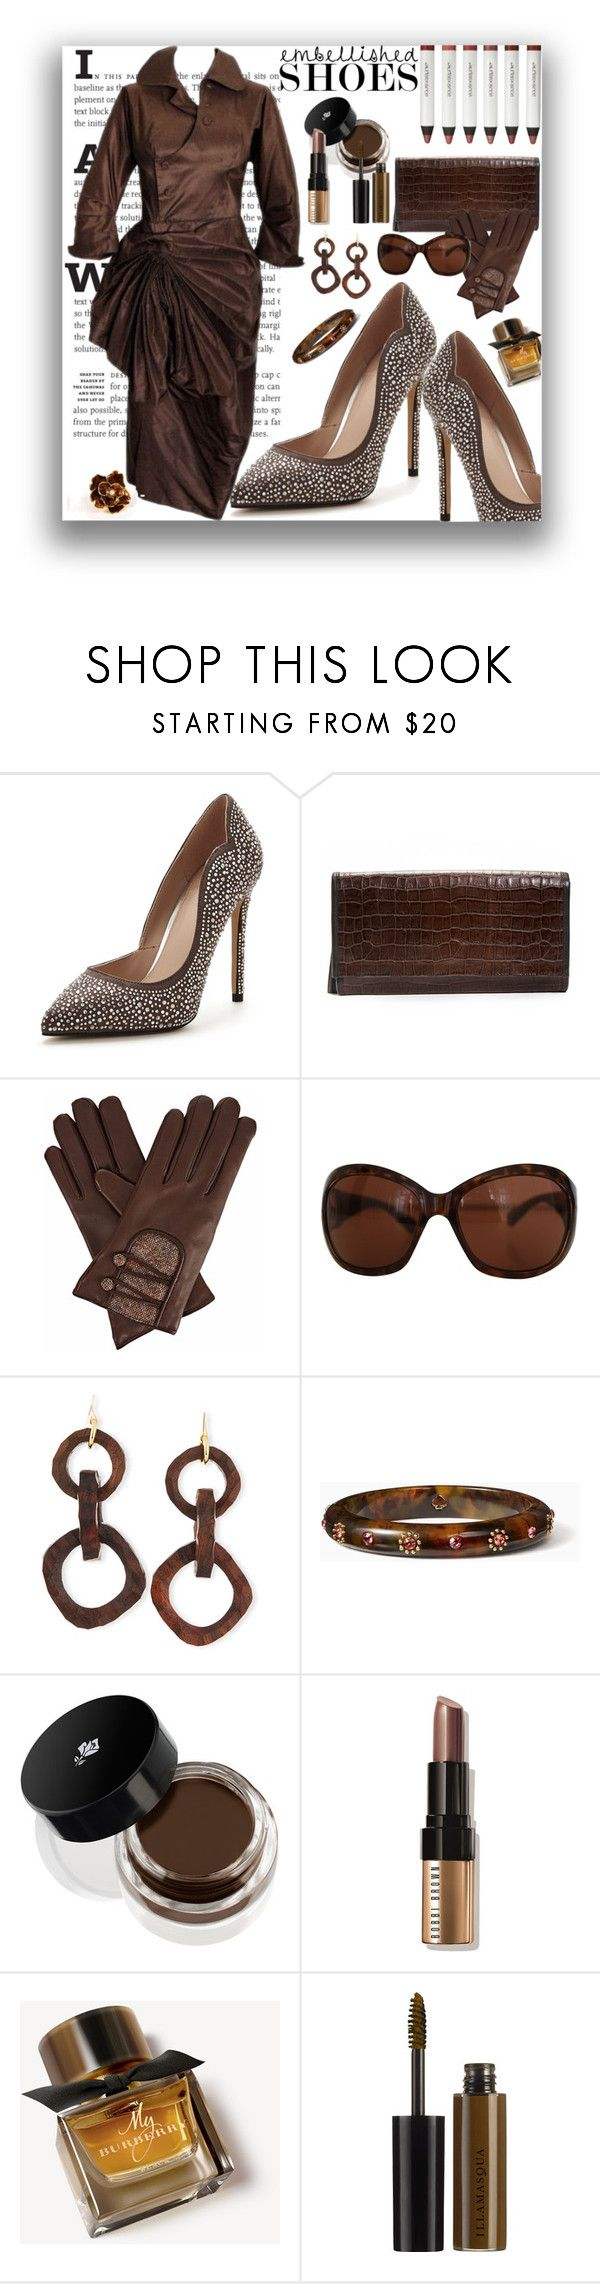 """Embellished Shoes"" by marionmeyer ❤ liked on Polyvore featuring Carvela, Gizelle Renee, Giorgio Armani, Nest, Kate Spade, Lancôme, Bobbi Brown Cosmetics, Burberry, Illamasqua and Ceil Chapman"